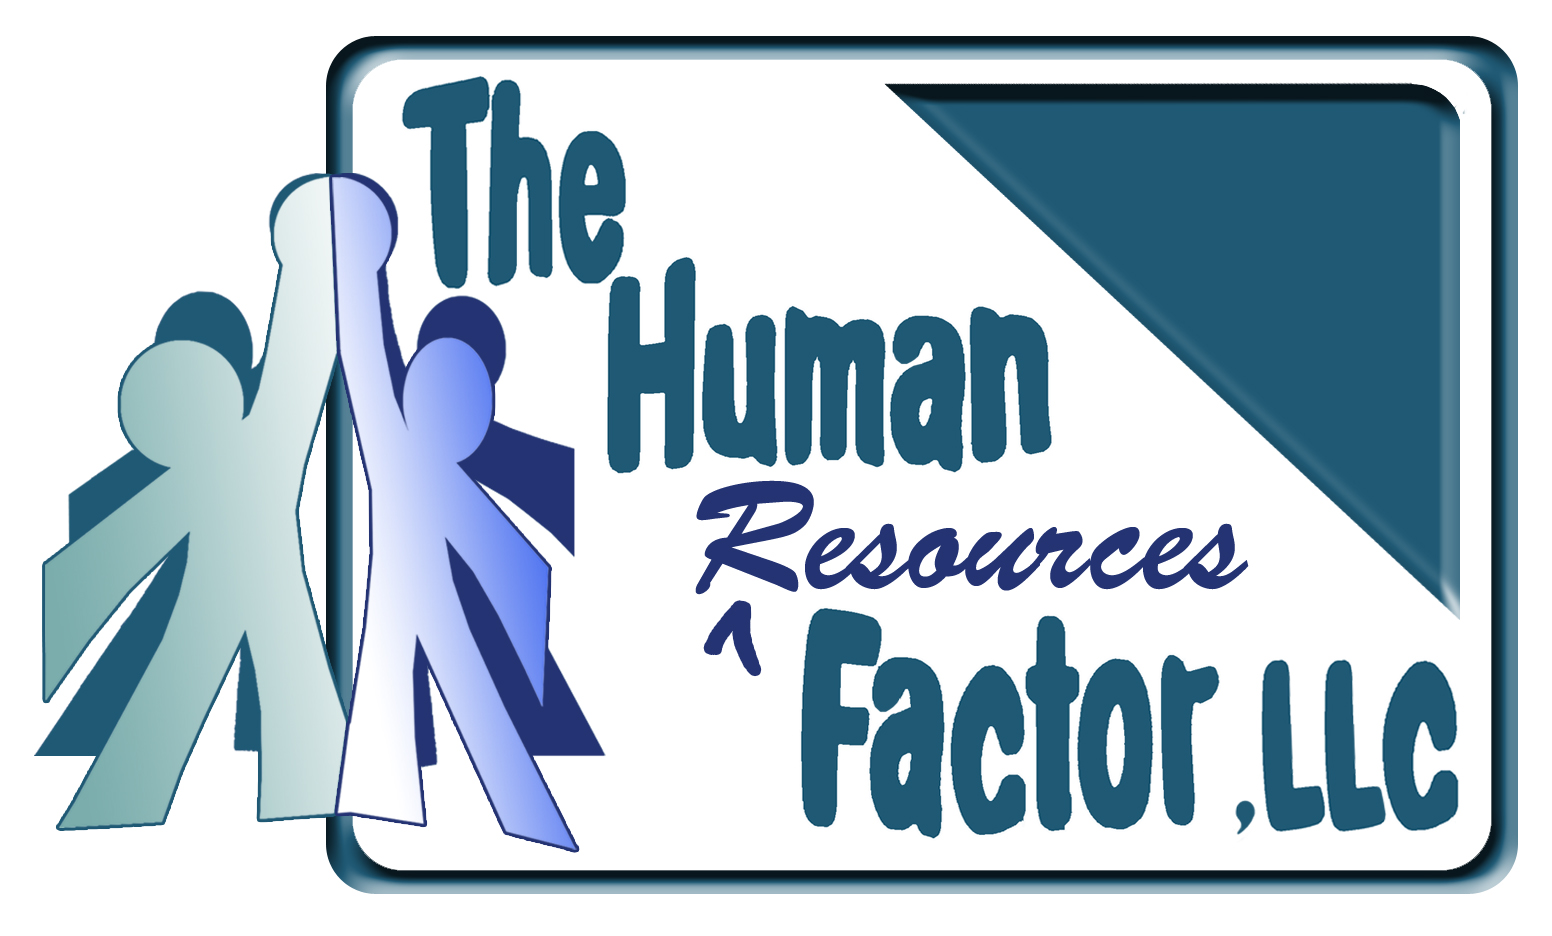 It's all about the HUMAN factor!